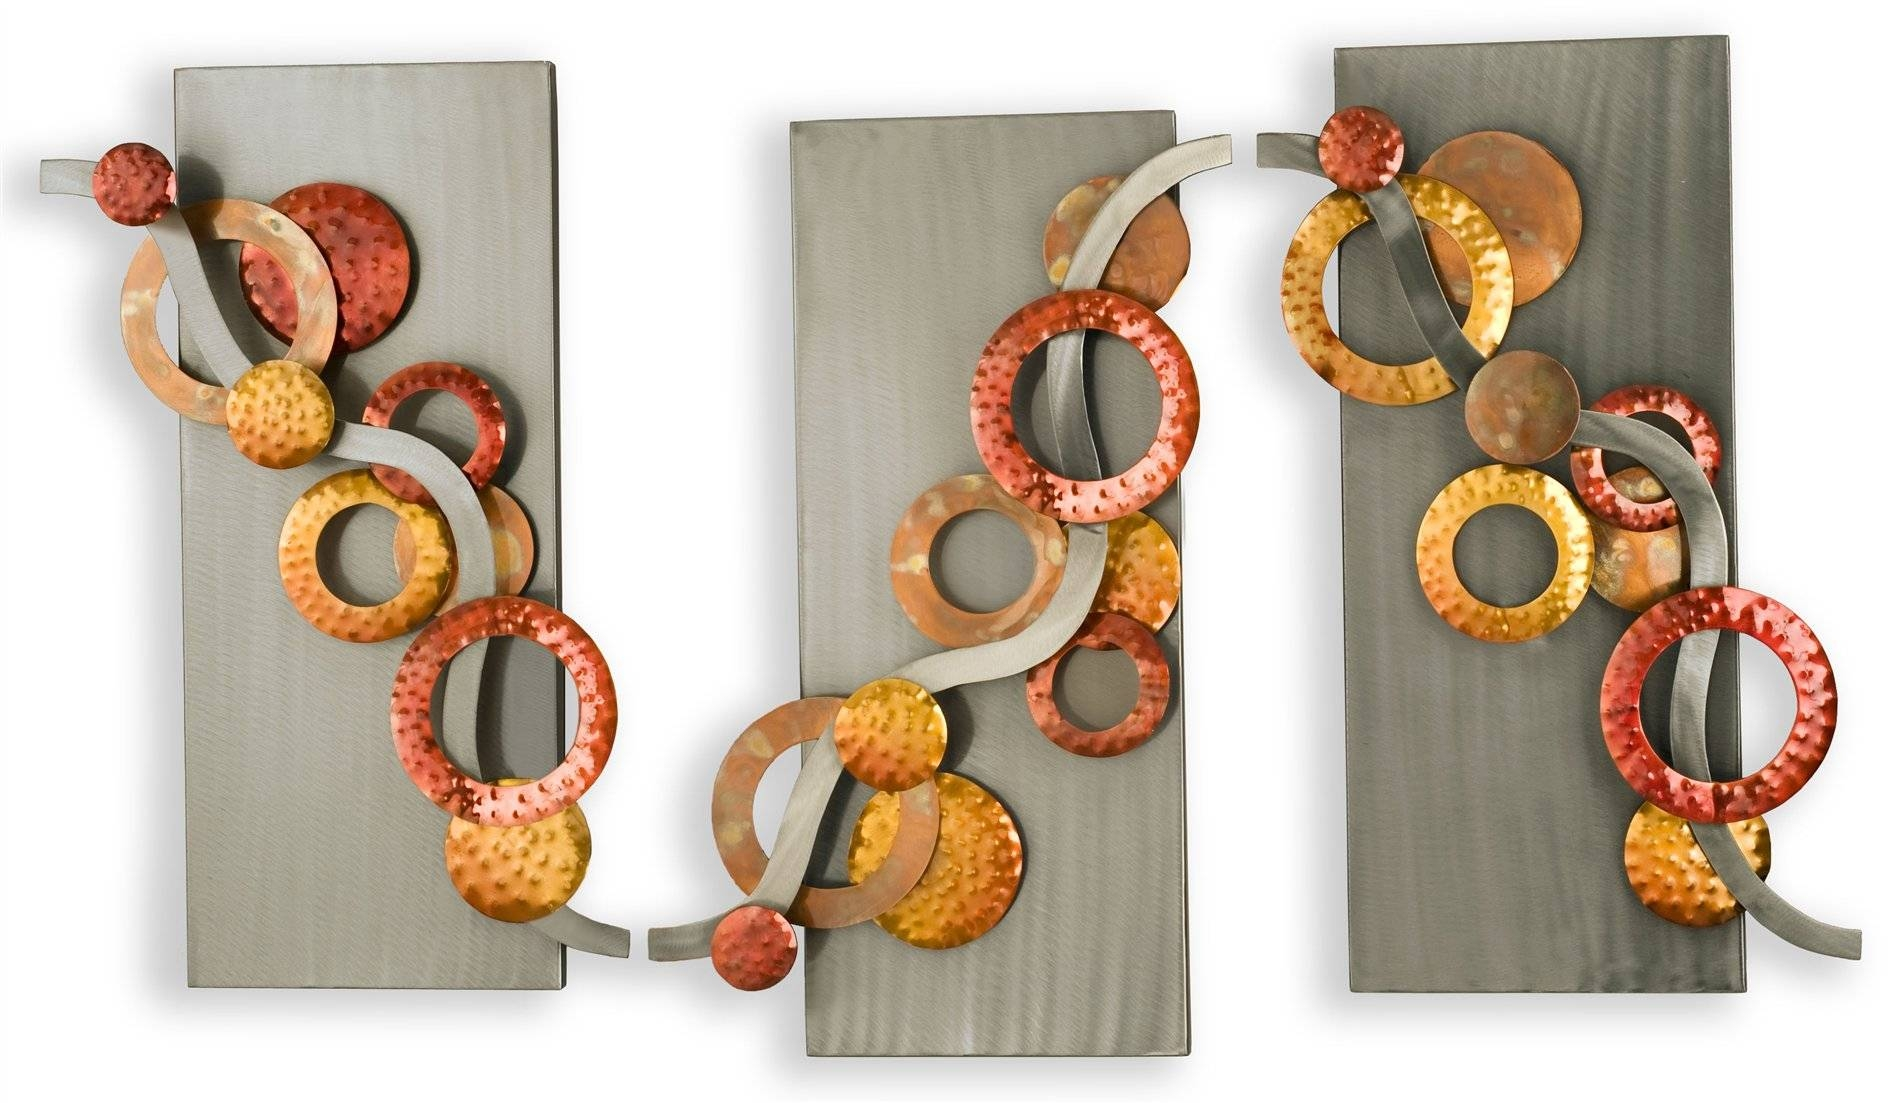 Nova Lighting 12683 Spumante Contemporary Wall Art / Wall Decor pertaining to Most Up-to-Date Nova Wall Art